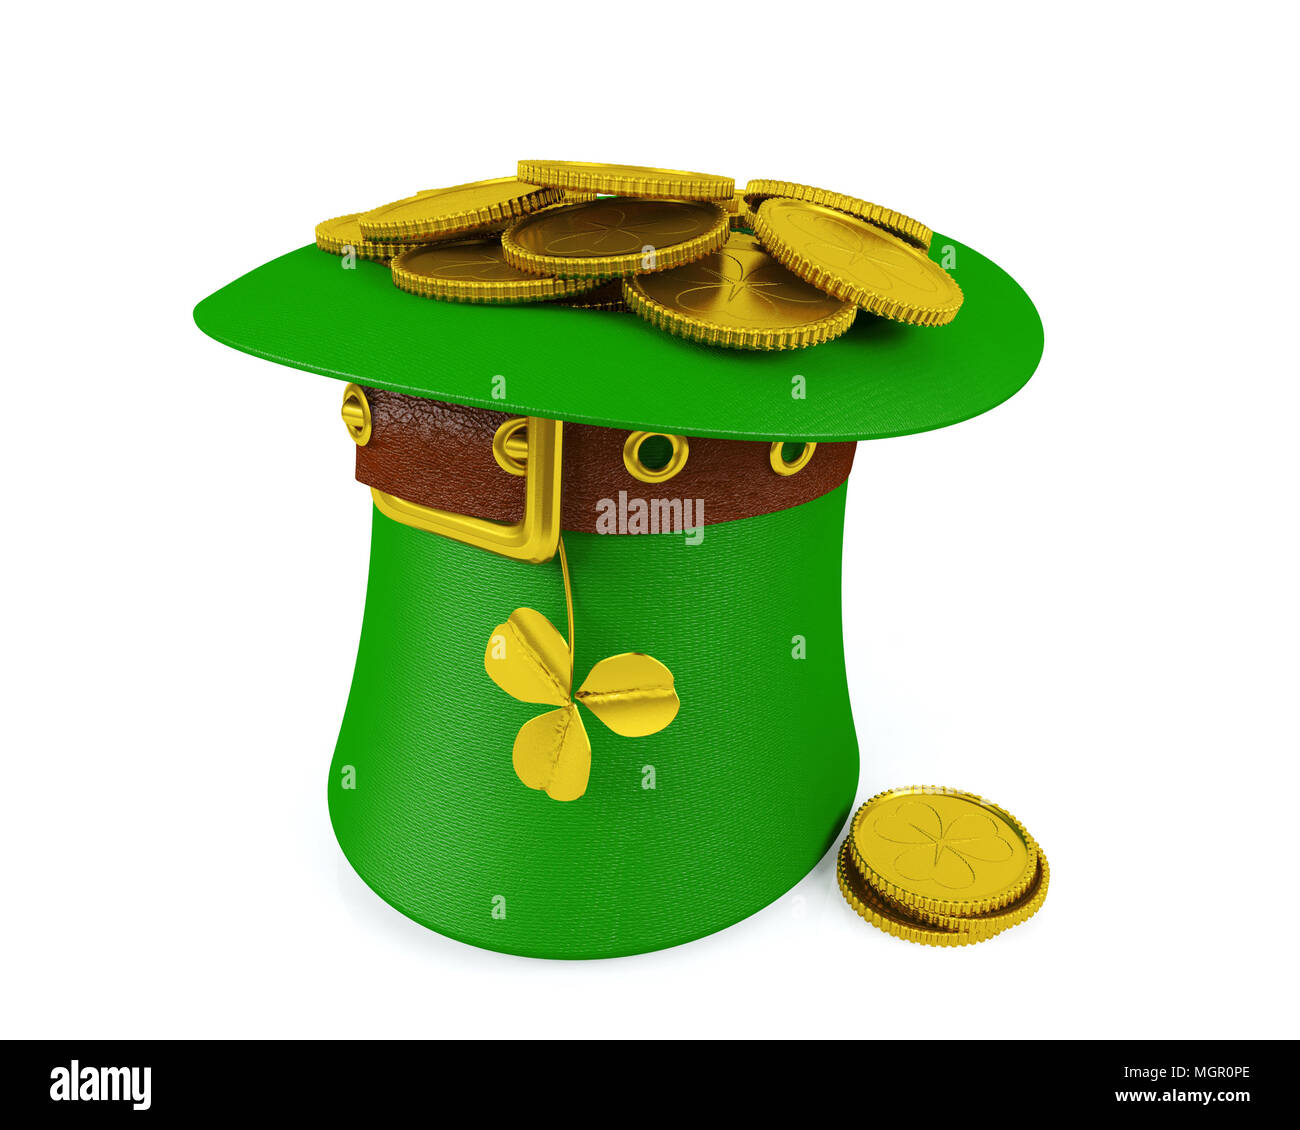 Saint Patrick's Day Leprechaun Hat with Gold Coins, 3D Rendering - Stock Image